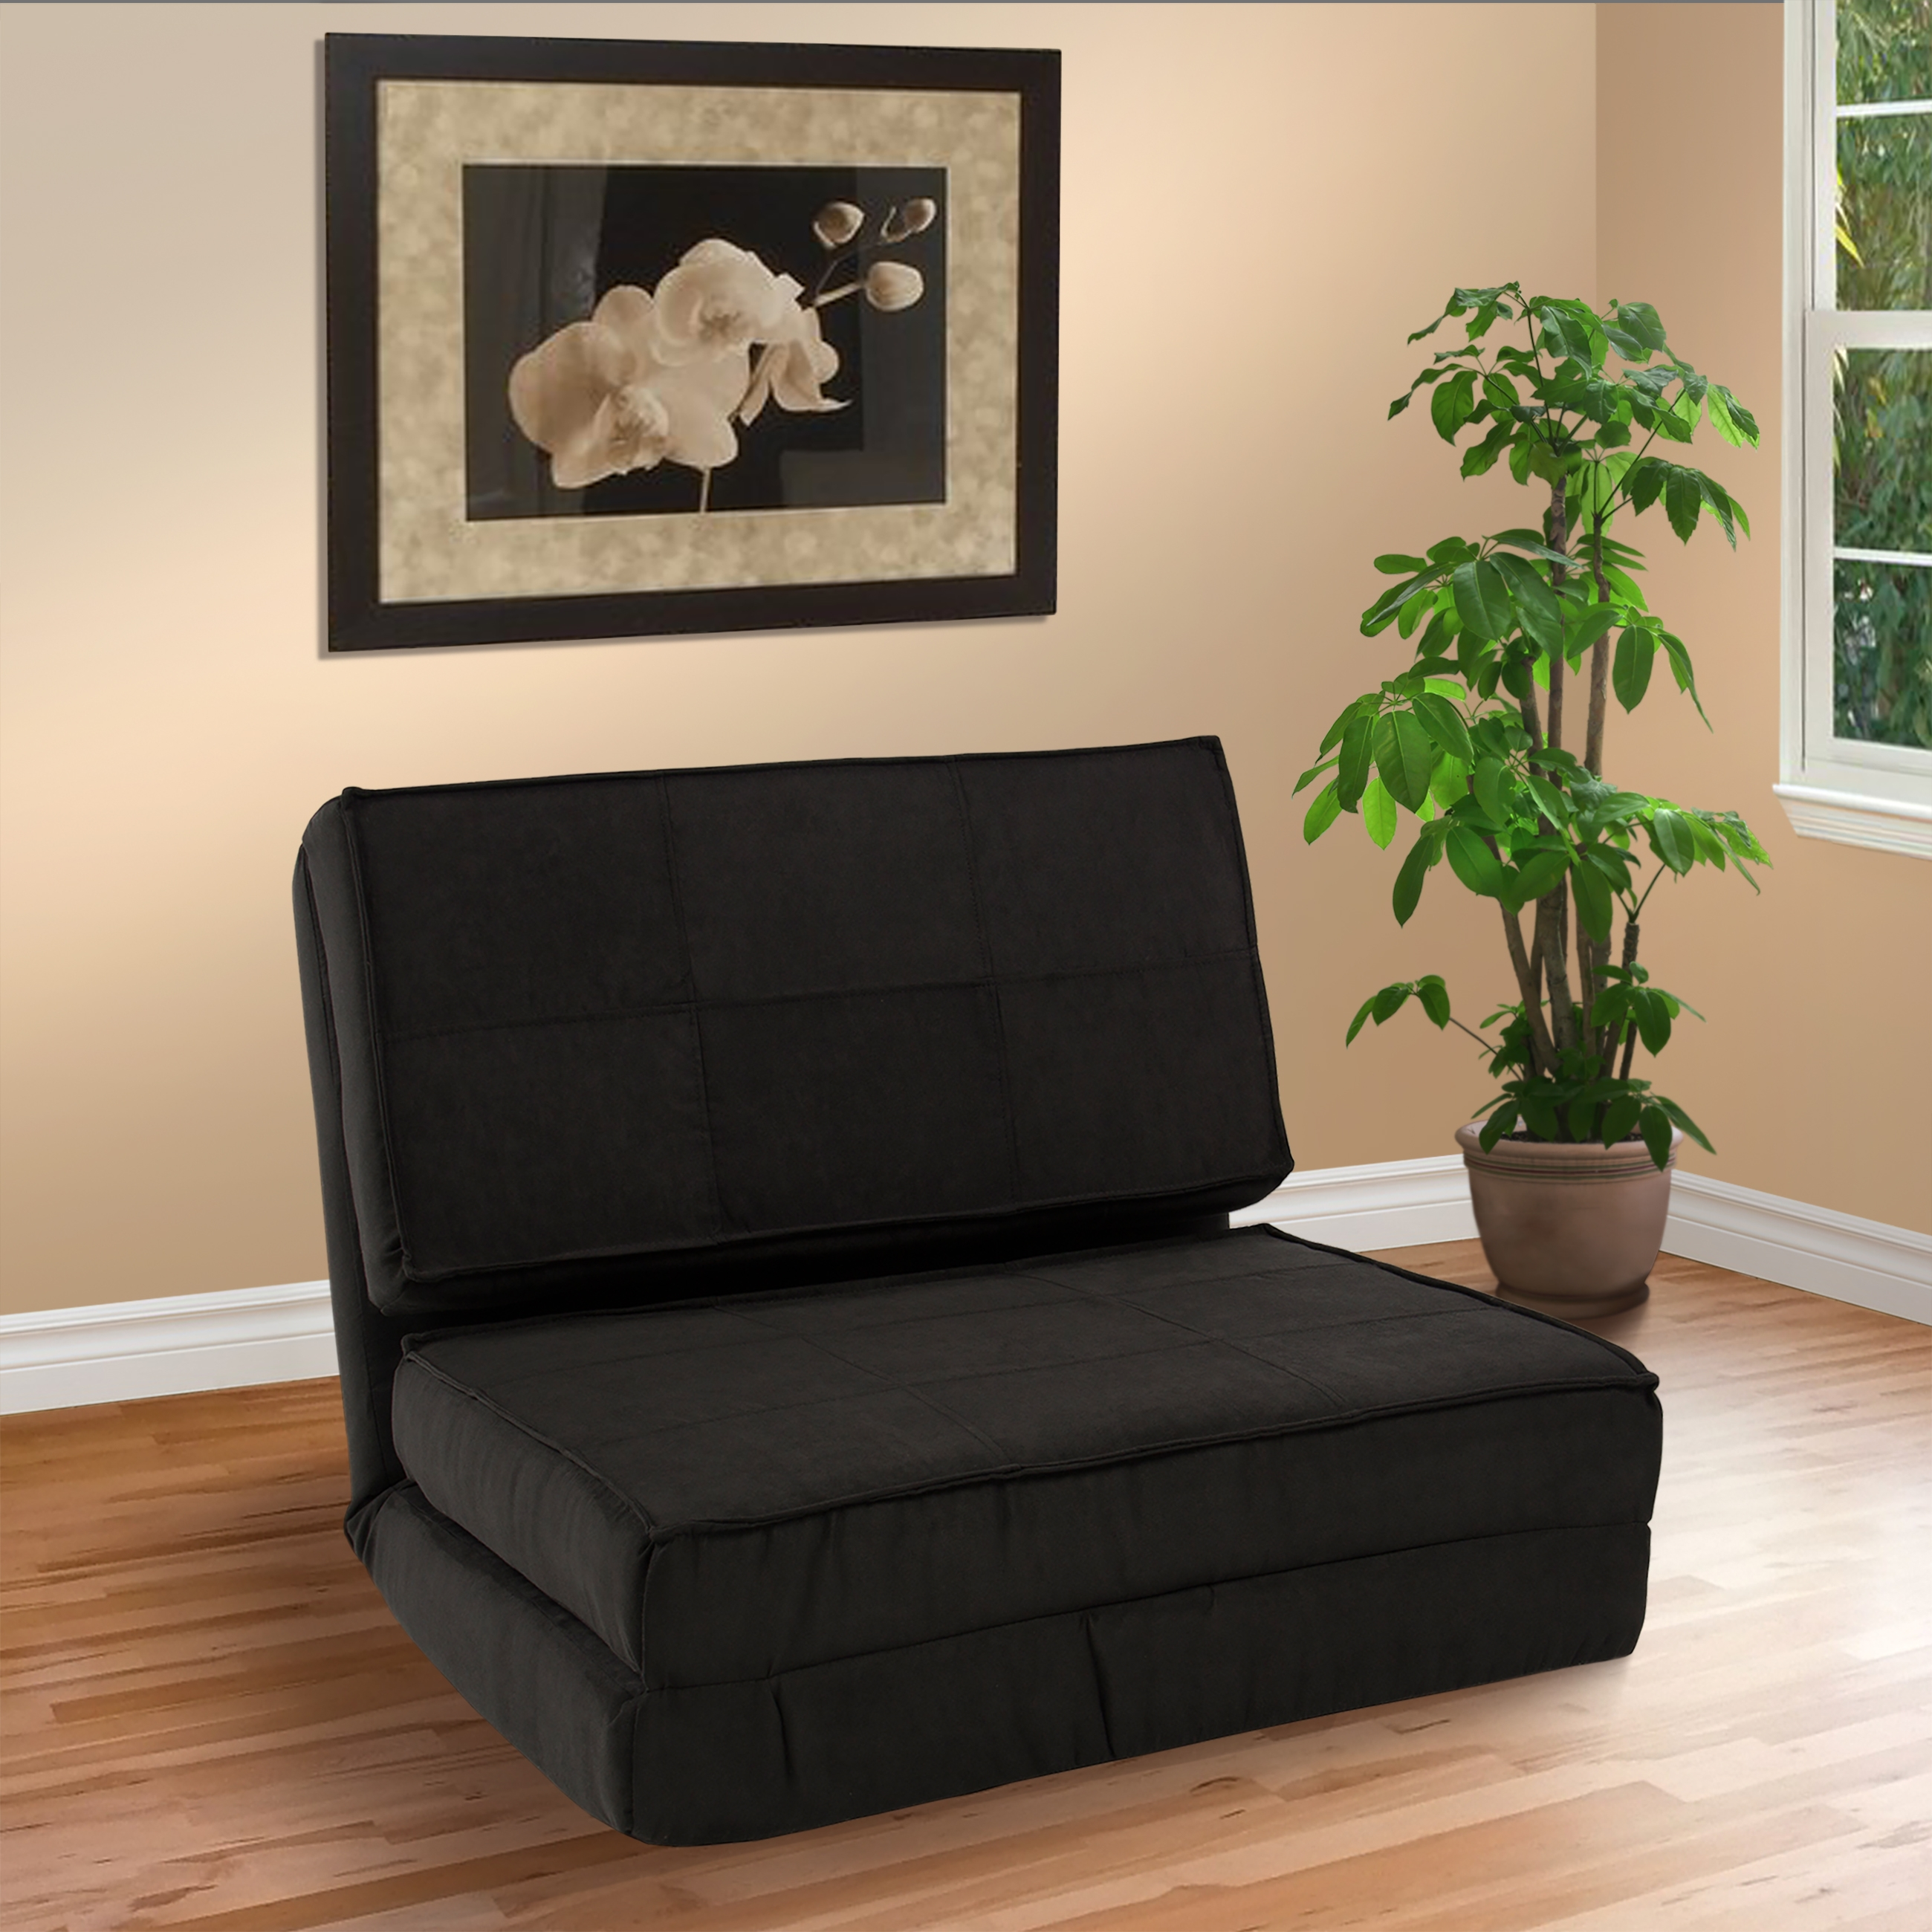 Fold Down Chair Flip Out Lounger Convertible Sleeper Bed Couch Pertaining To Fold Up Sofa Chairs (Image 5 of 15)